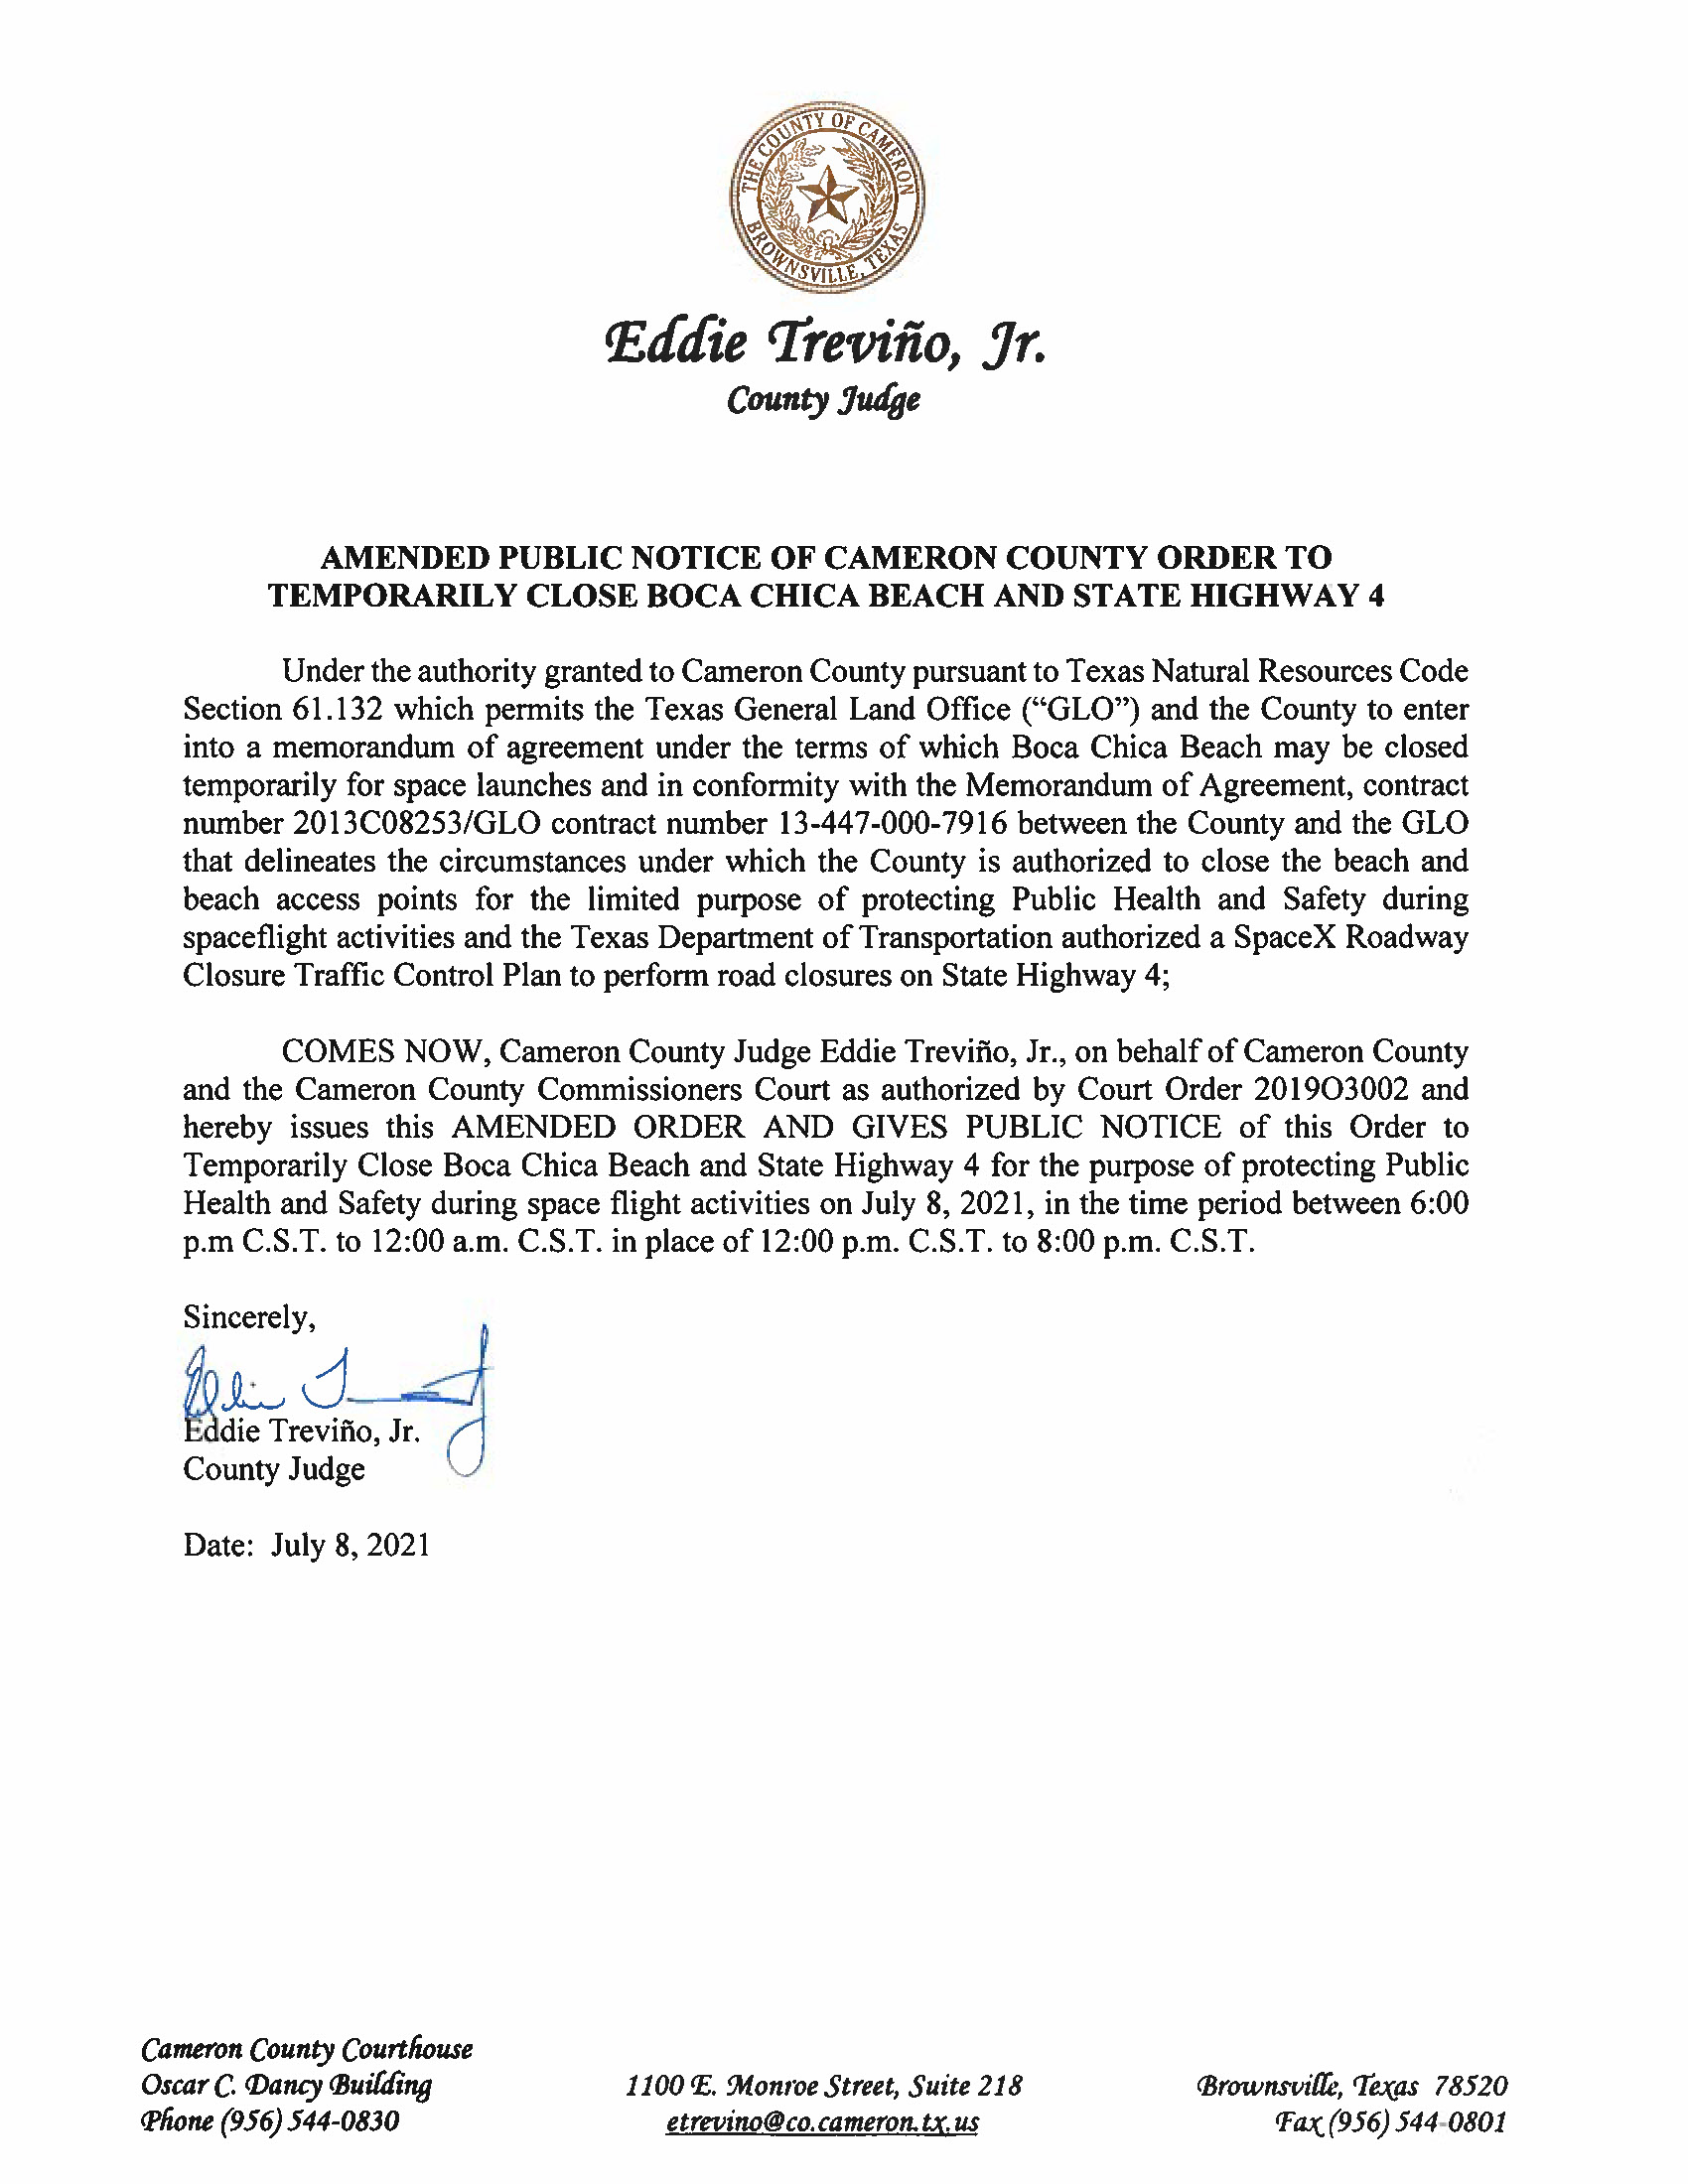 AMENDMENT PUBLIC NOTICE OF CAMERON COUNTY ORDER TO TEMP. BEACH CLOSURE AND HWY.07.08.21